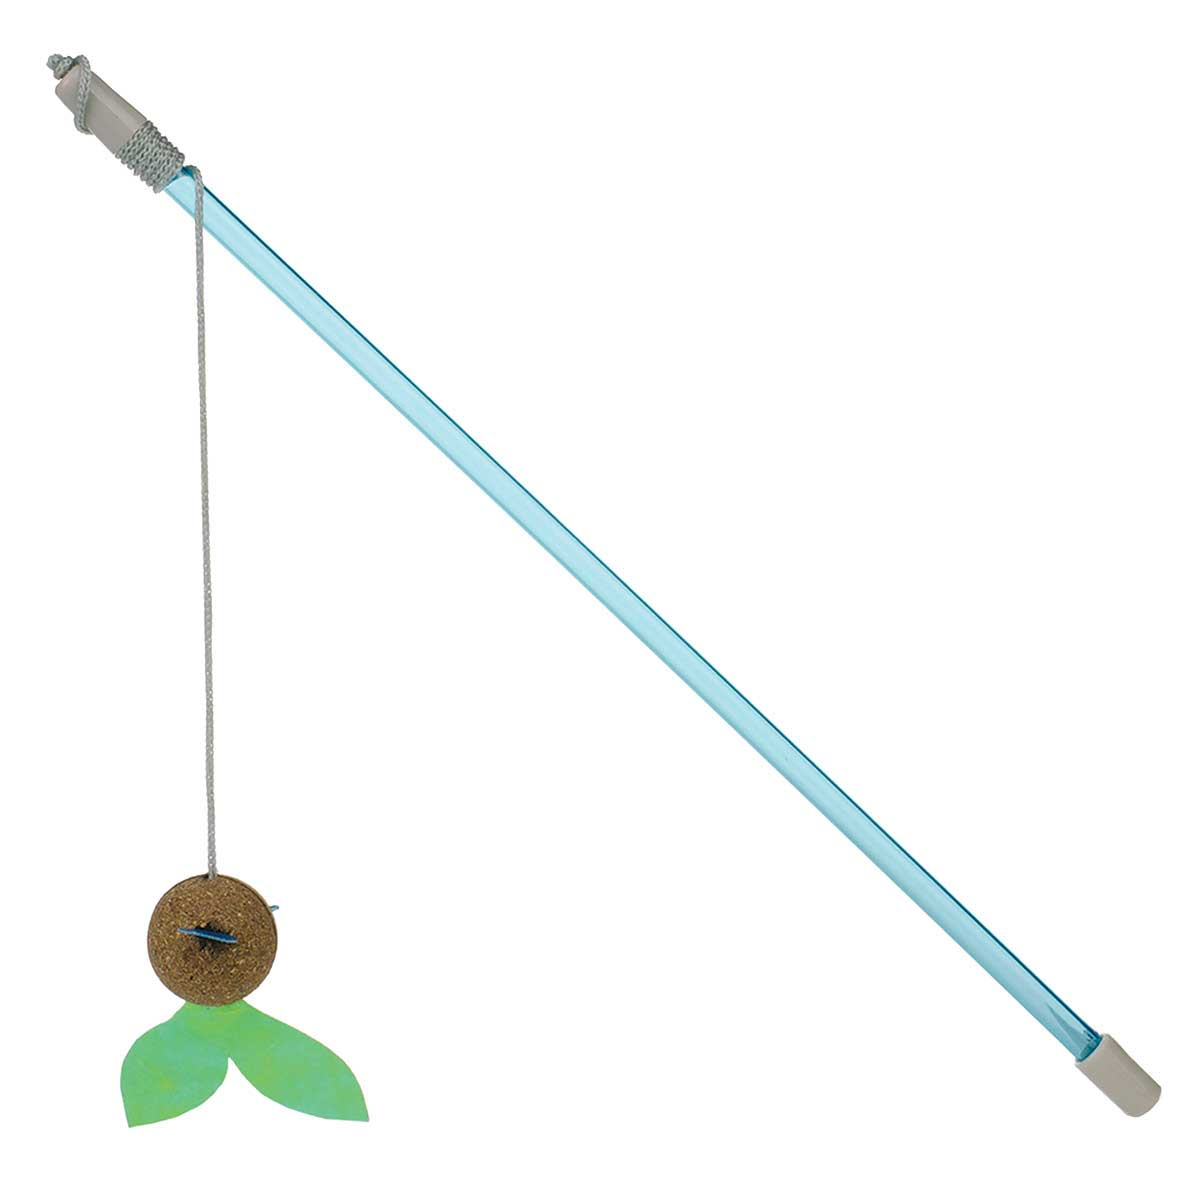 Our Pet Corknip Fish Swish Wand Toy for Cats - 14 inch